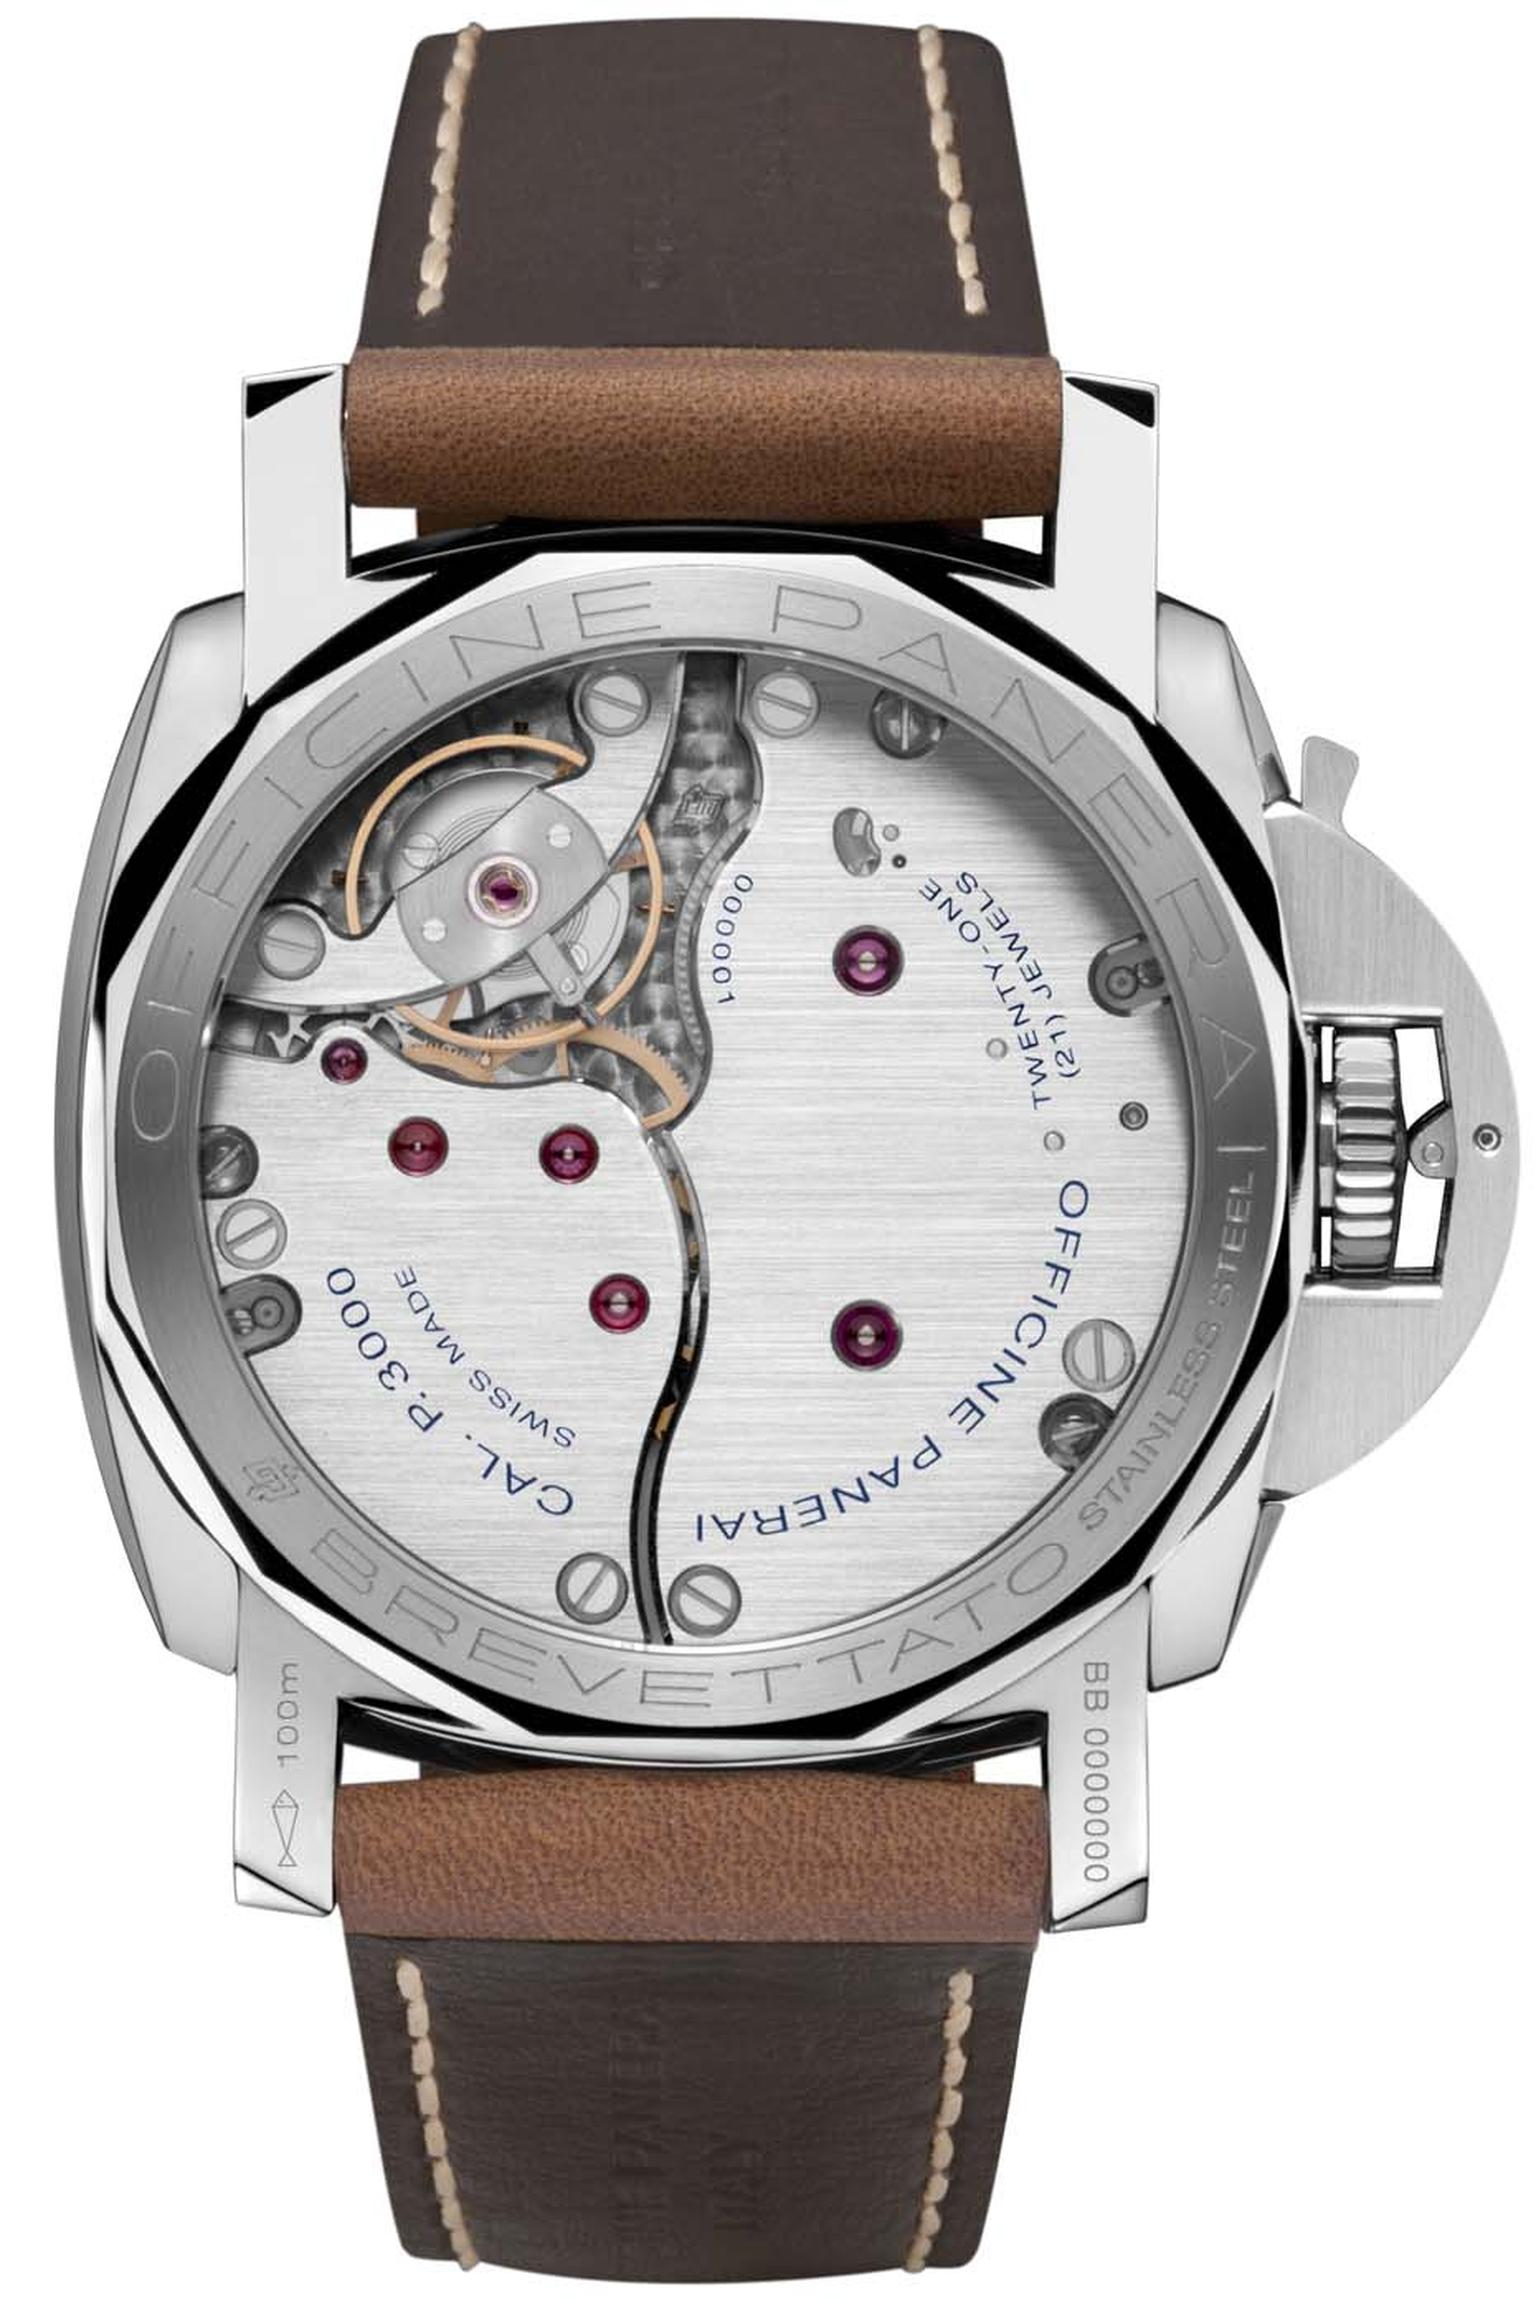 movement of the Panerai Luminor 1950